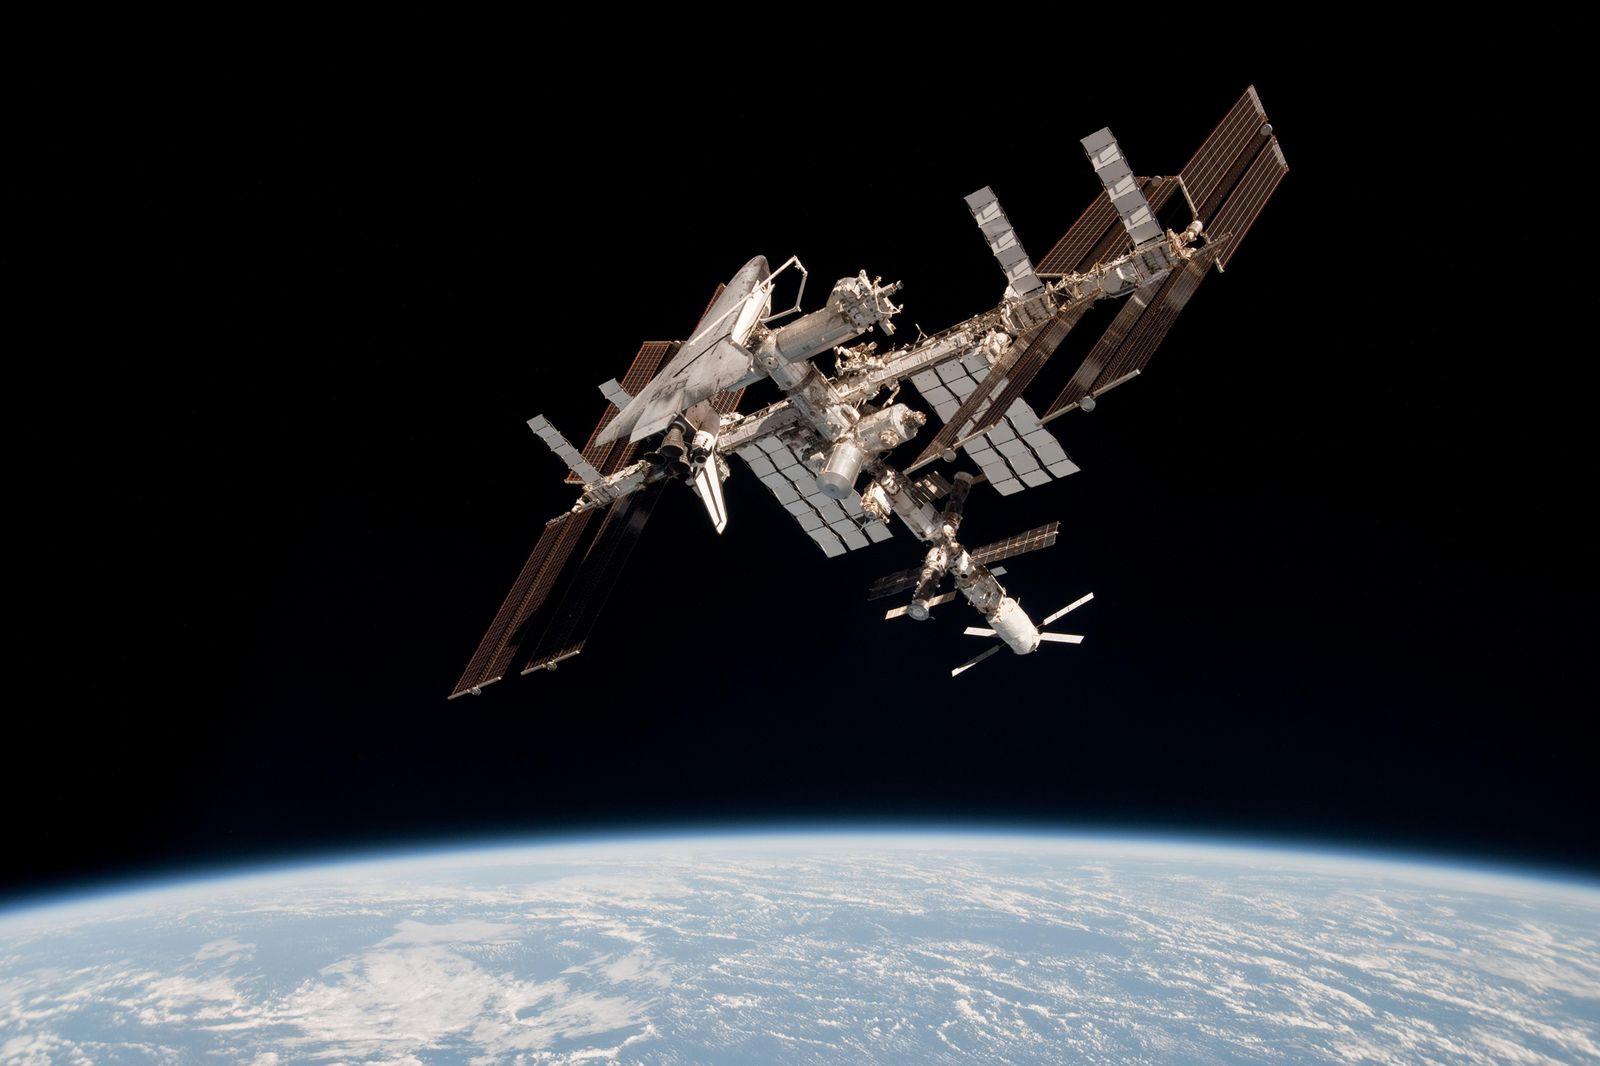 ISS / Endeavour